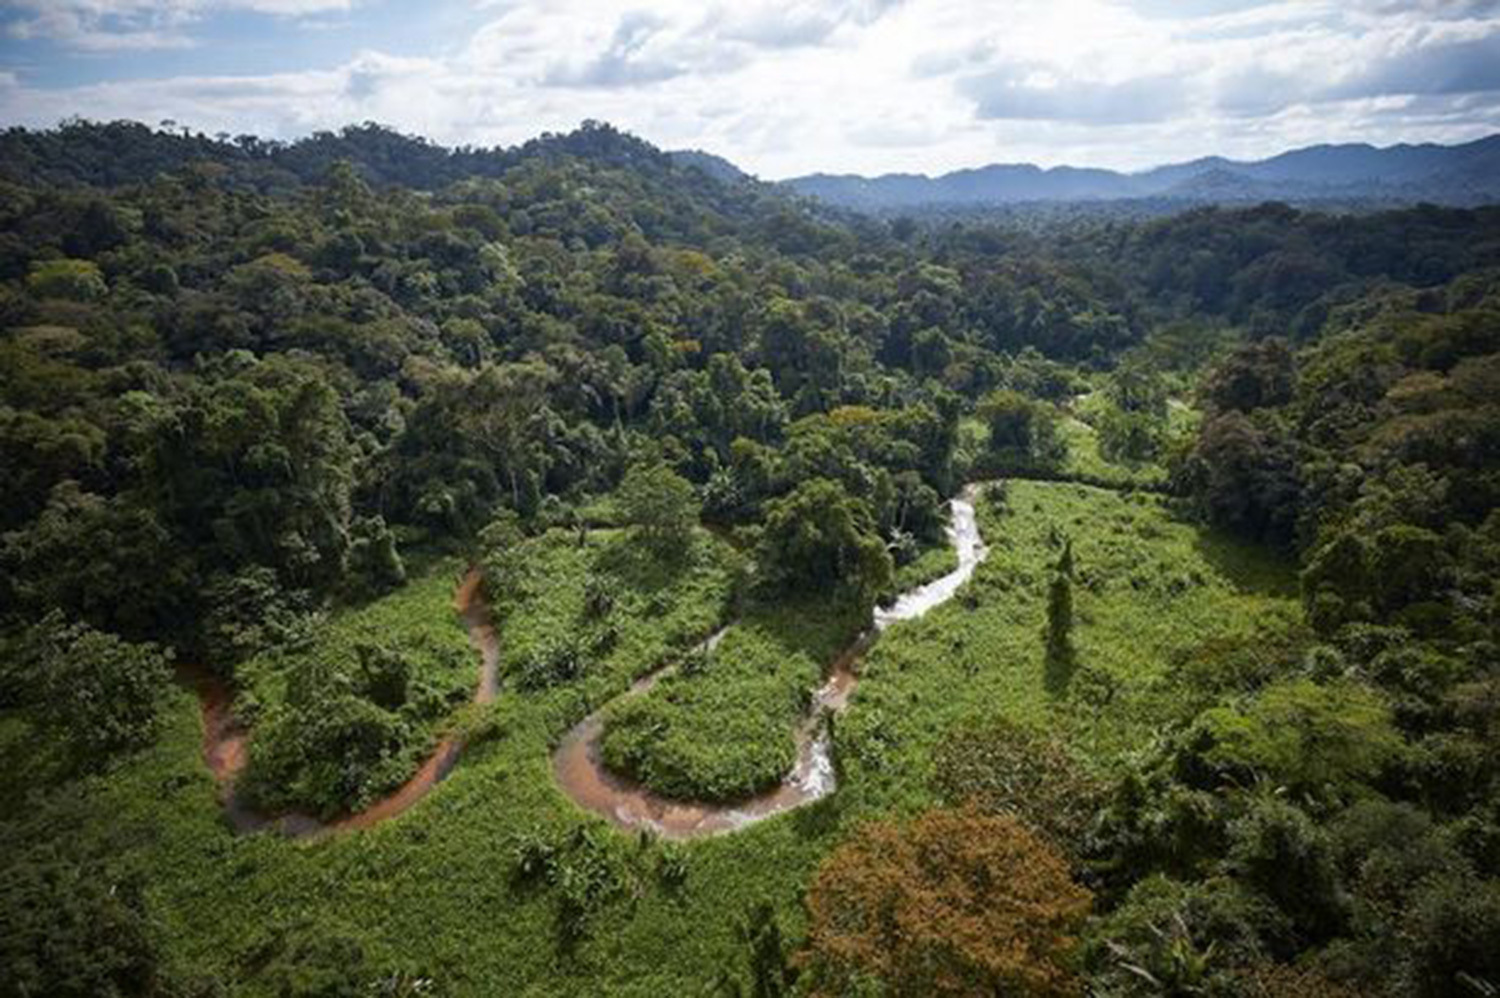 The White City is thought to still be lost in the eastern Honduras rainforest